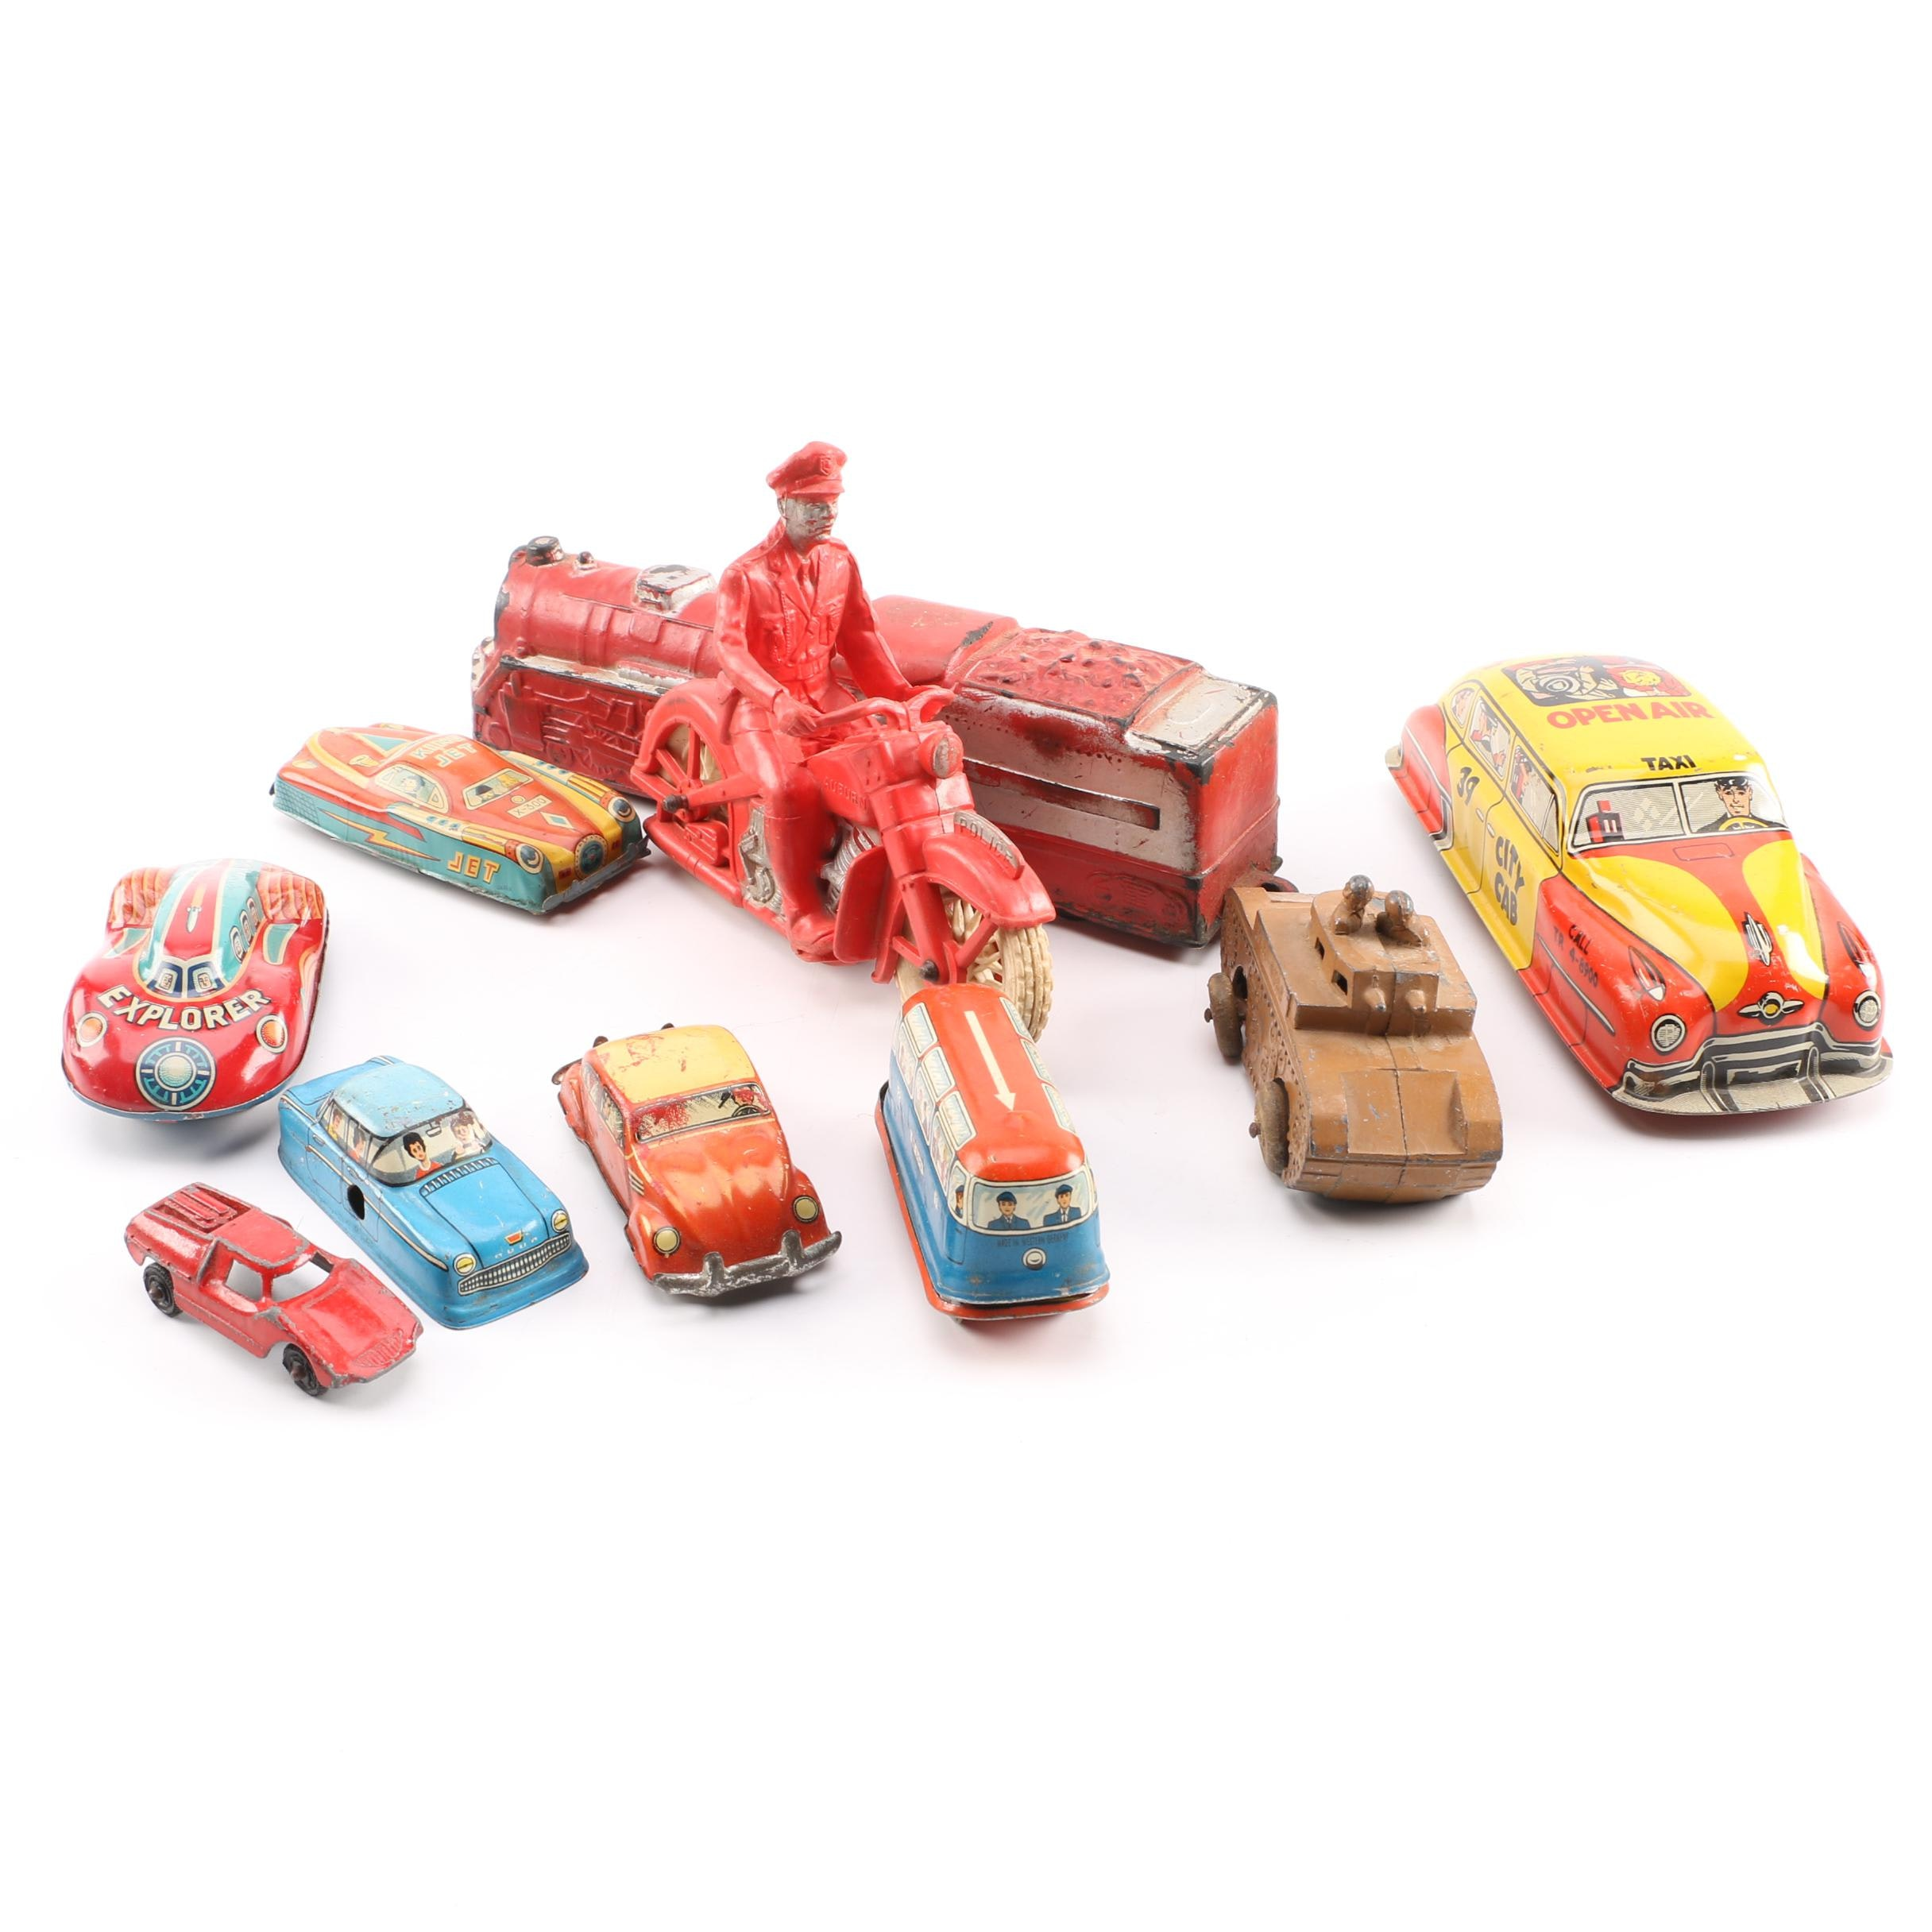 Vintage Vehicles Including Tin Friction Cars